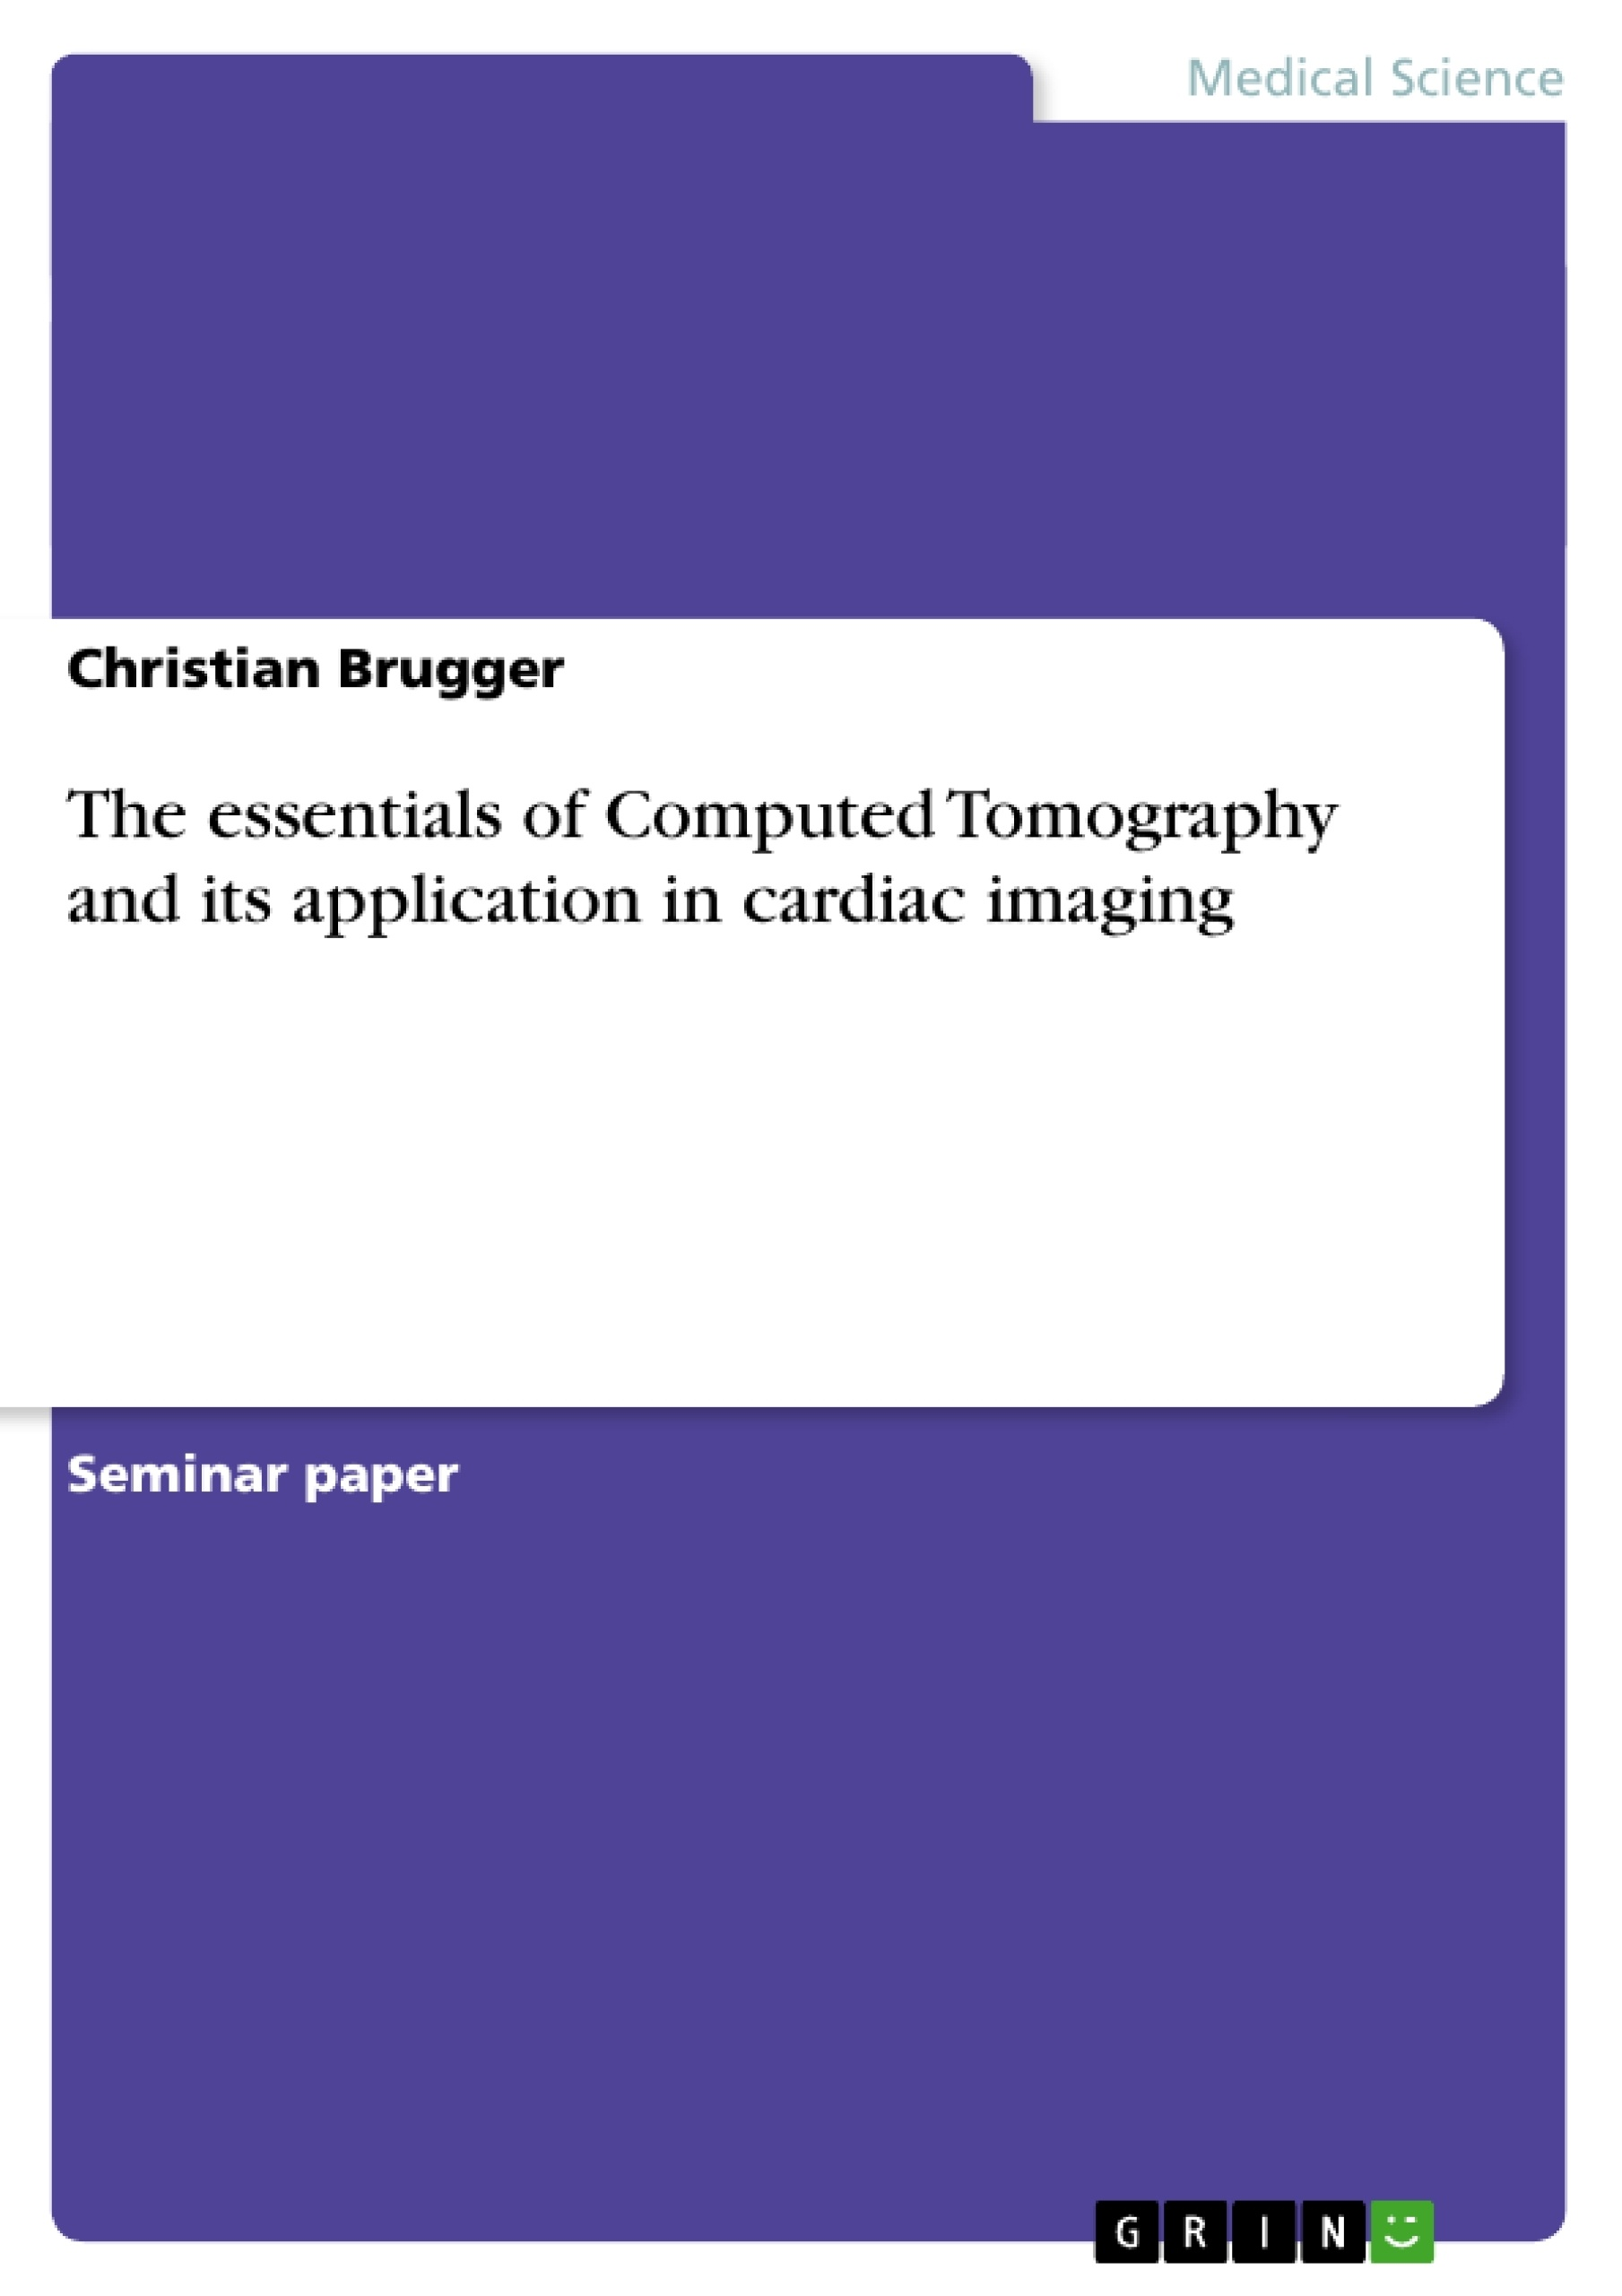 Title: The essentials of Computed Tomography and its application in cardiac imaging